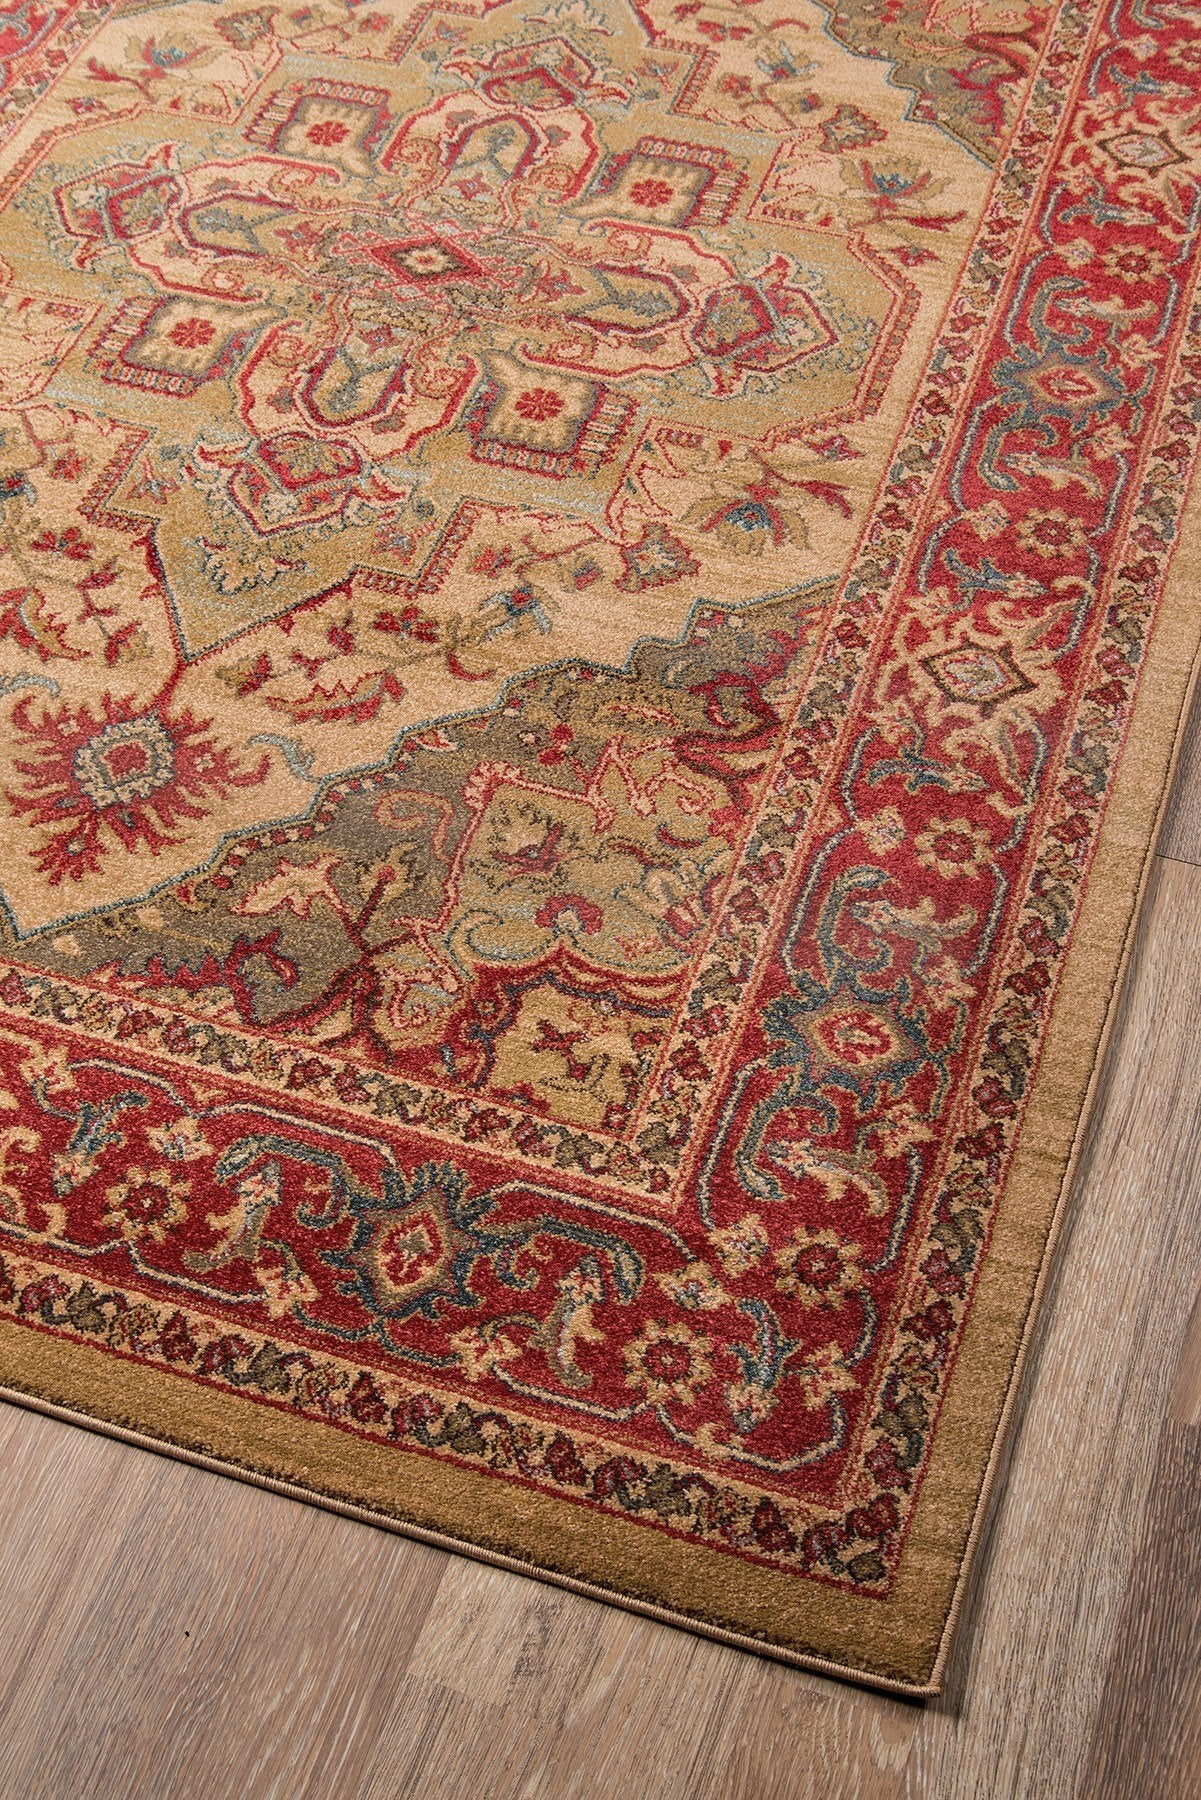 Momeni Area Rugs Ghazni Area Rugs GZ-05 Beige Kazak Poly Turkey